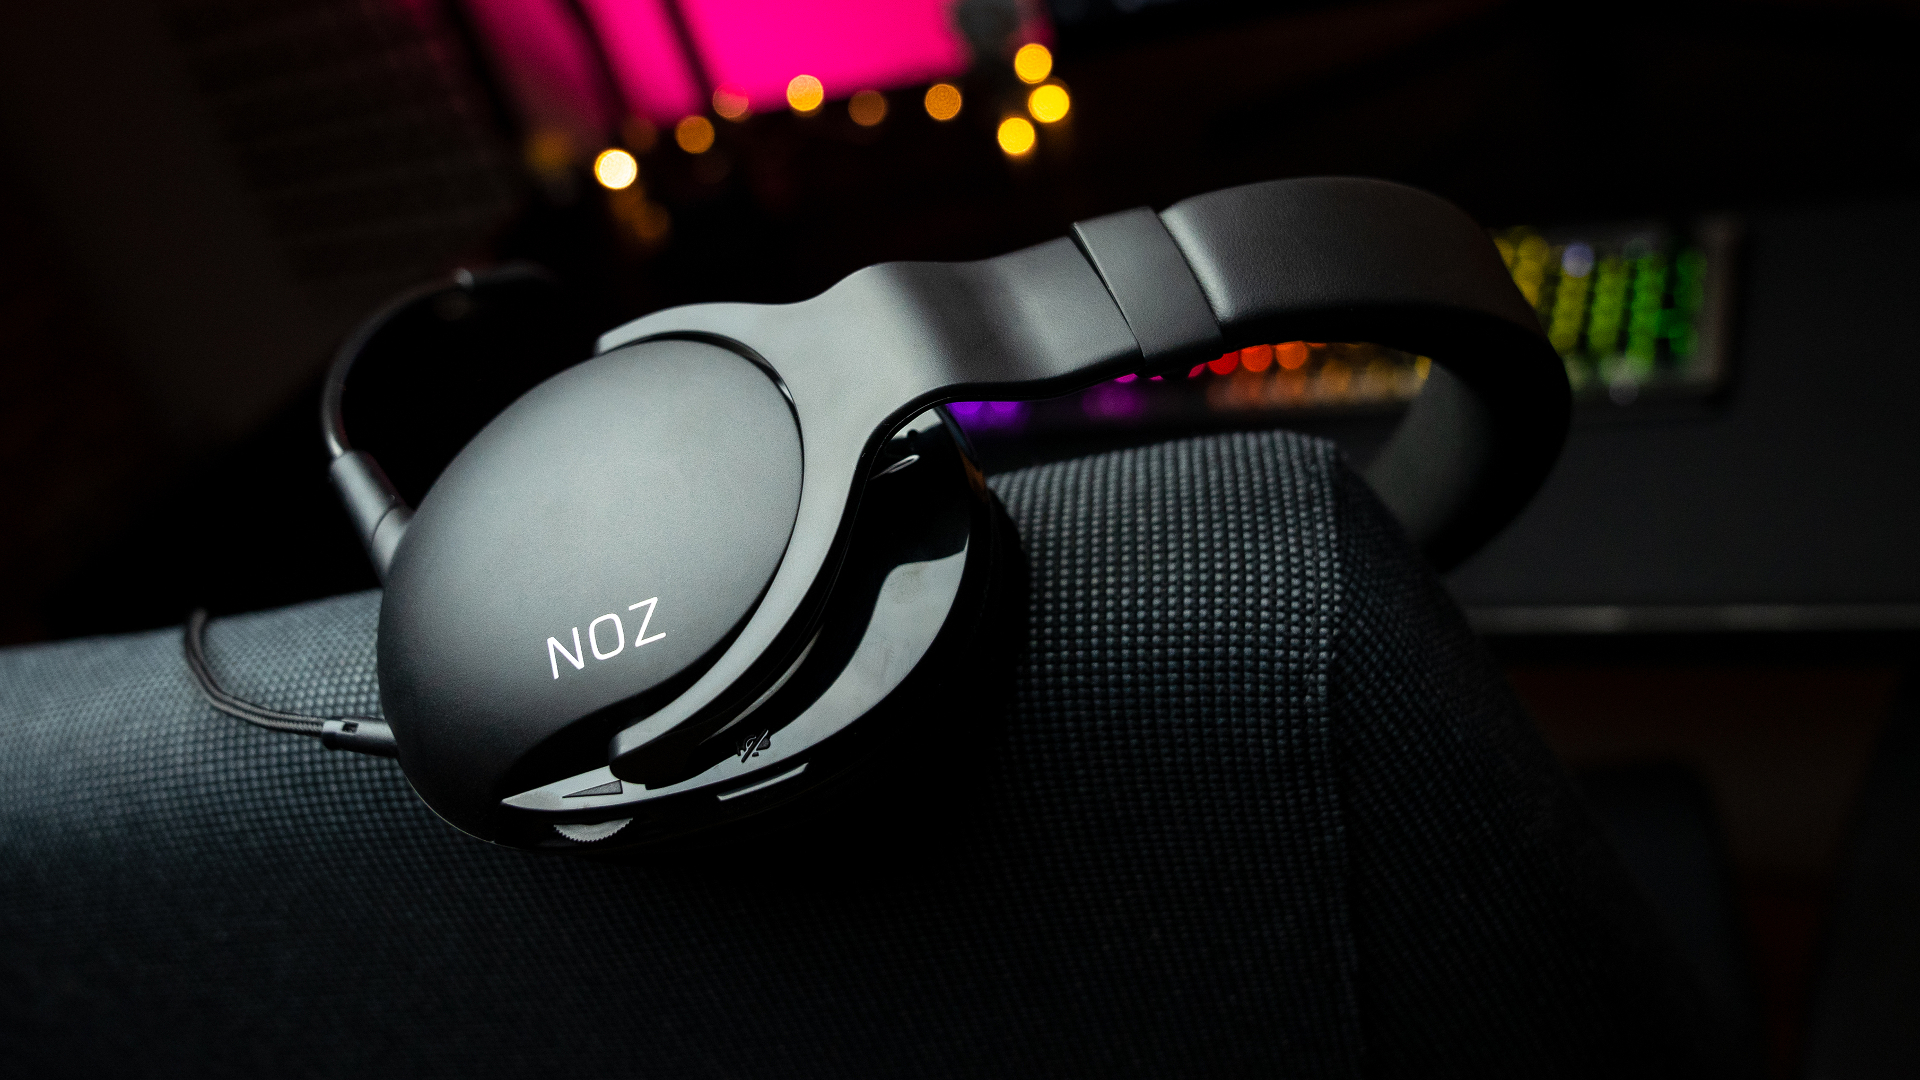 Roccat's comfort-focused Noz gaming headset won't give you any earaches